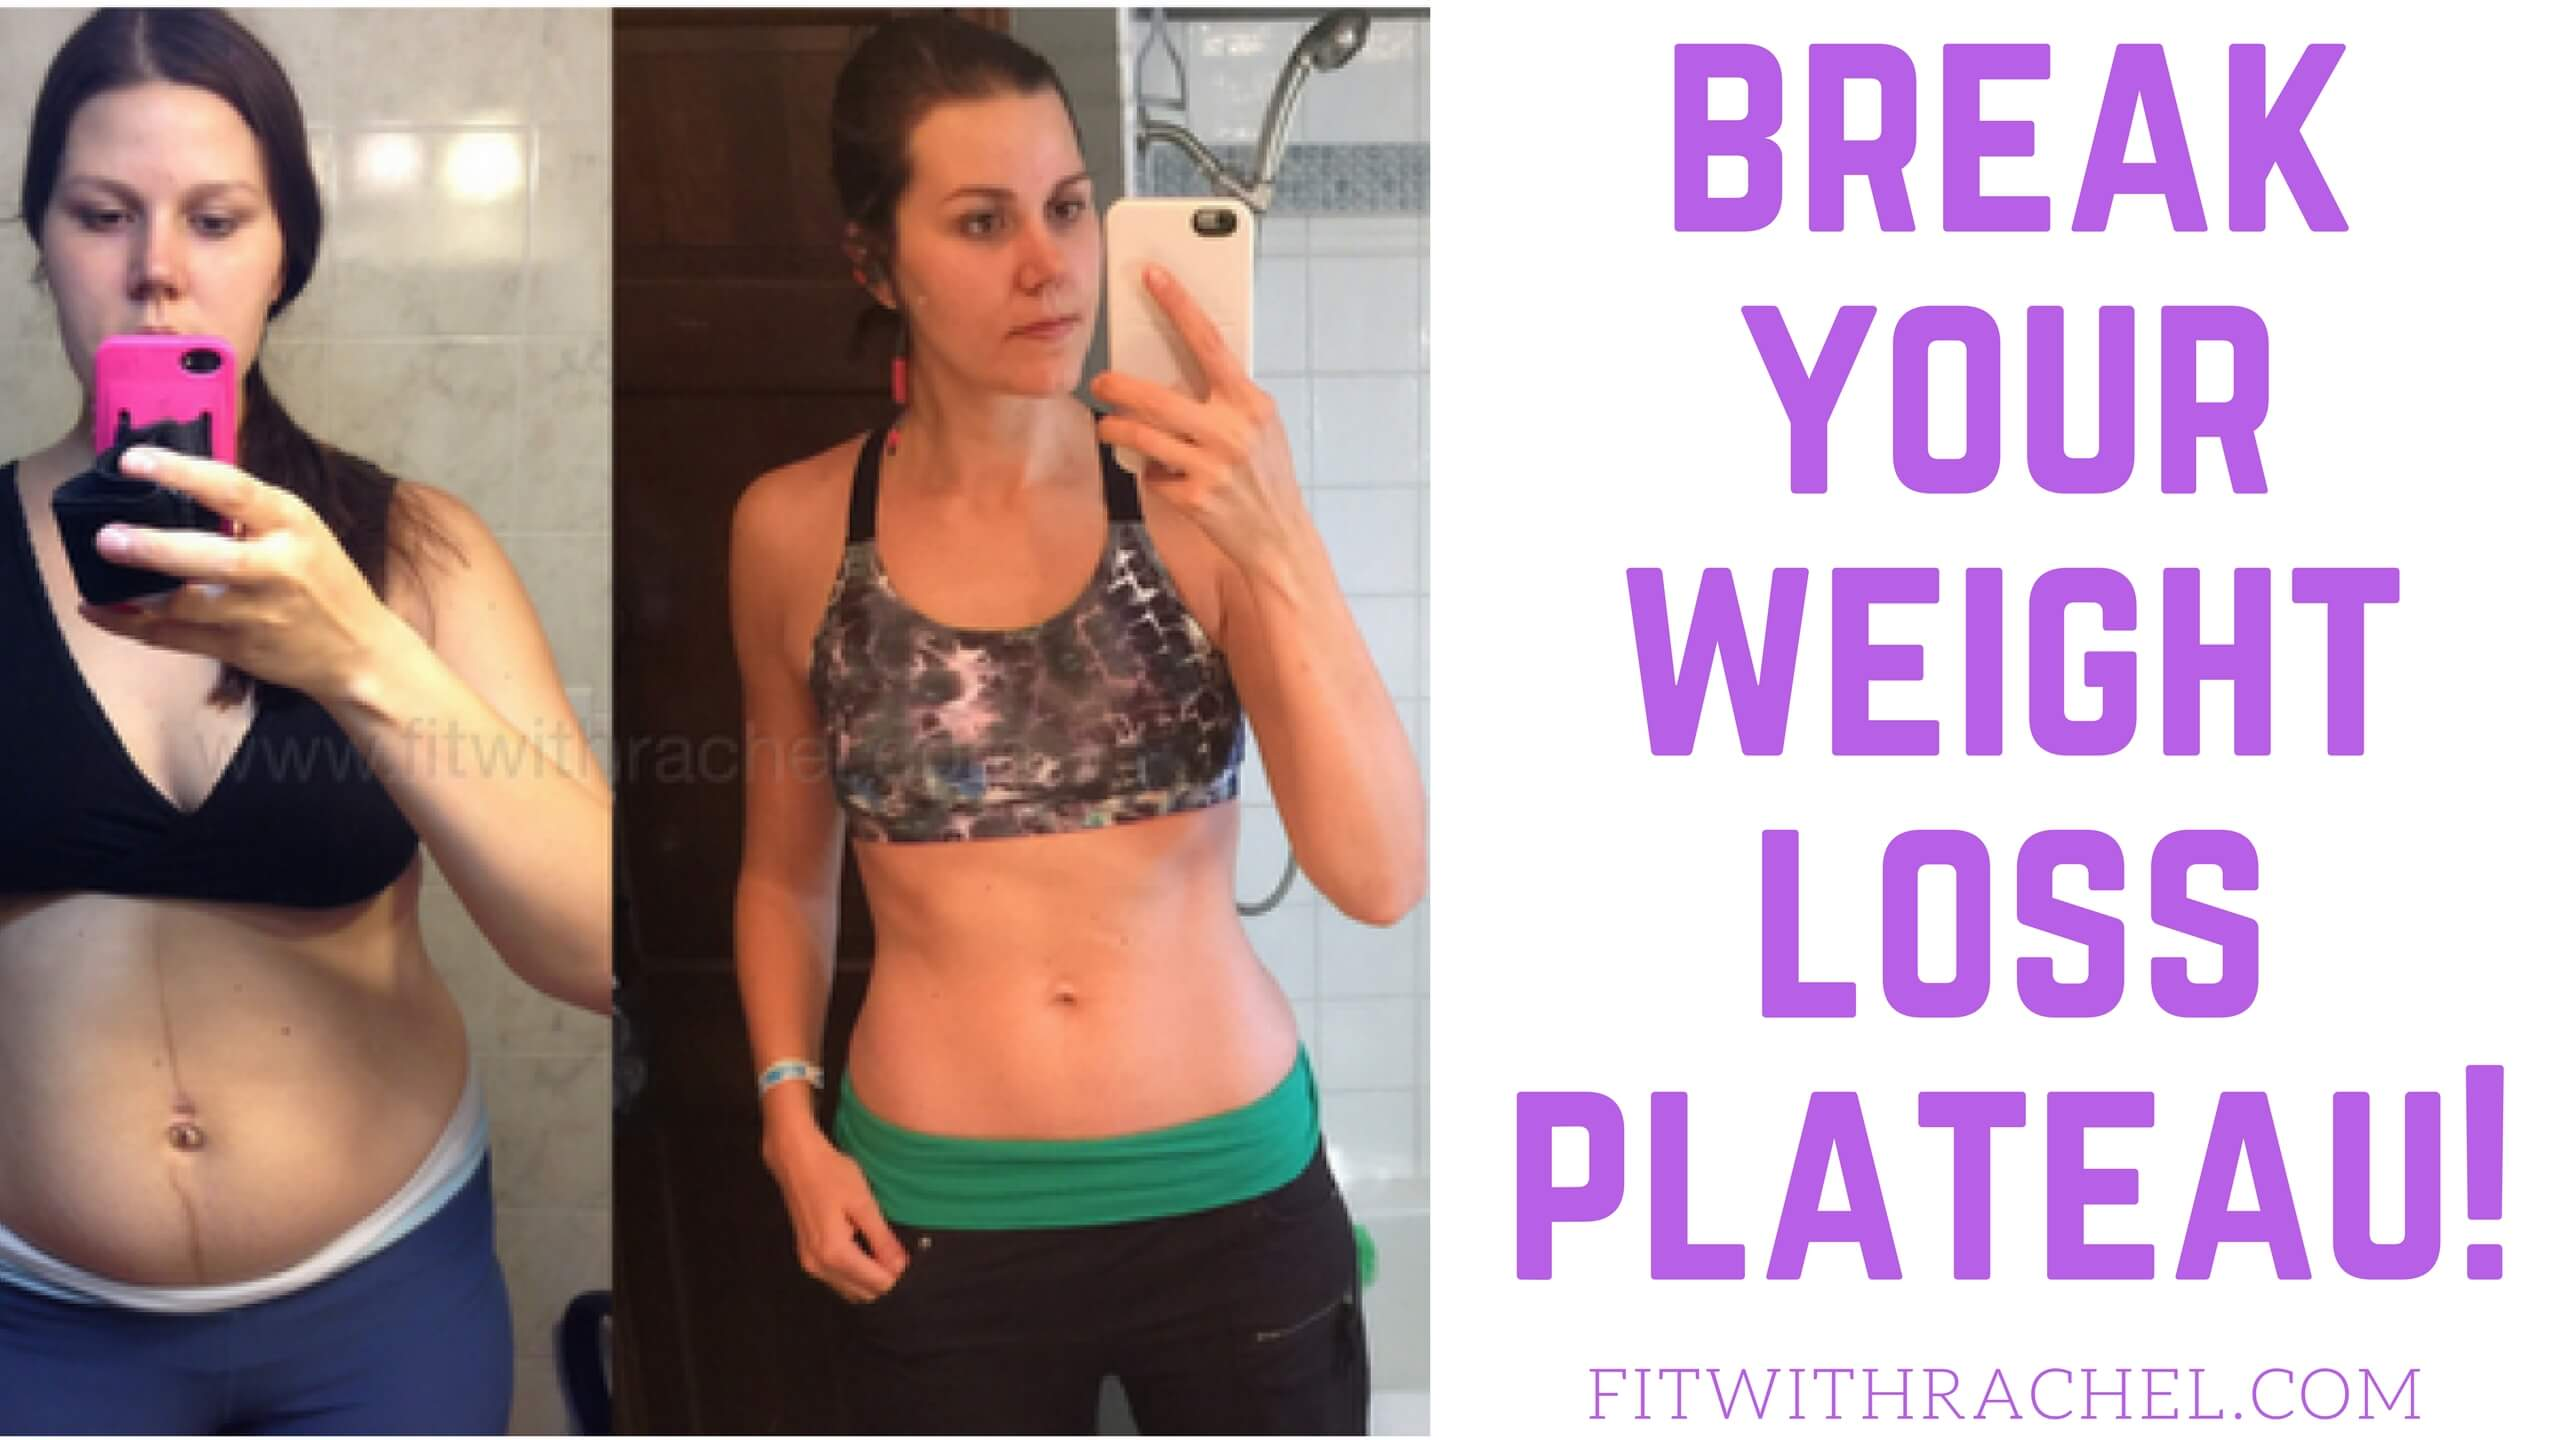 How To Break a Weight Loss Plateau: 3 Tips to Bust a Weight Loss ...